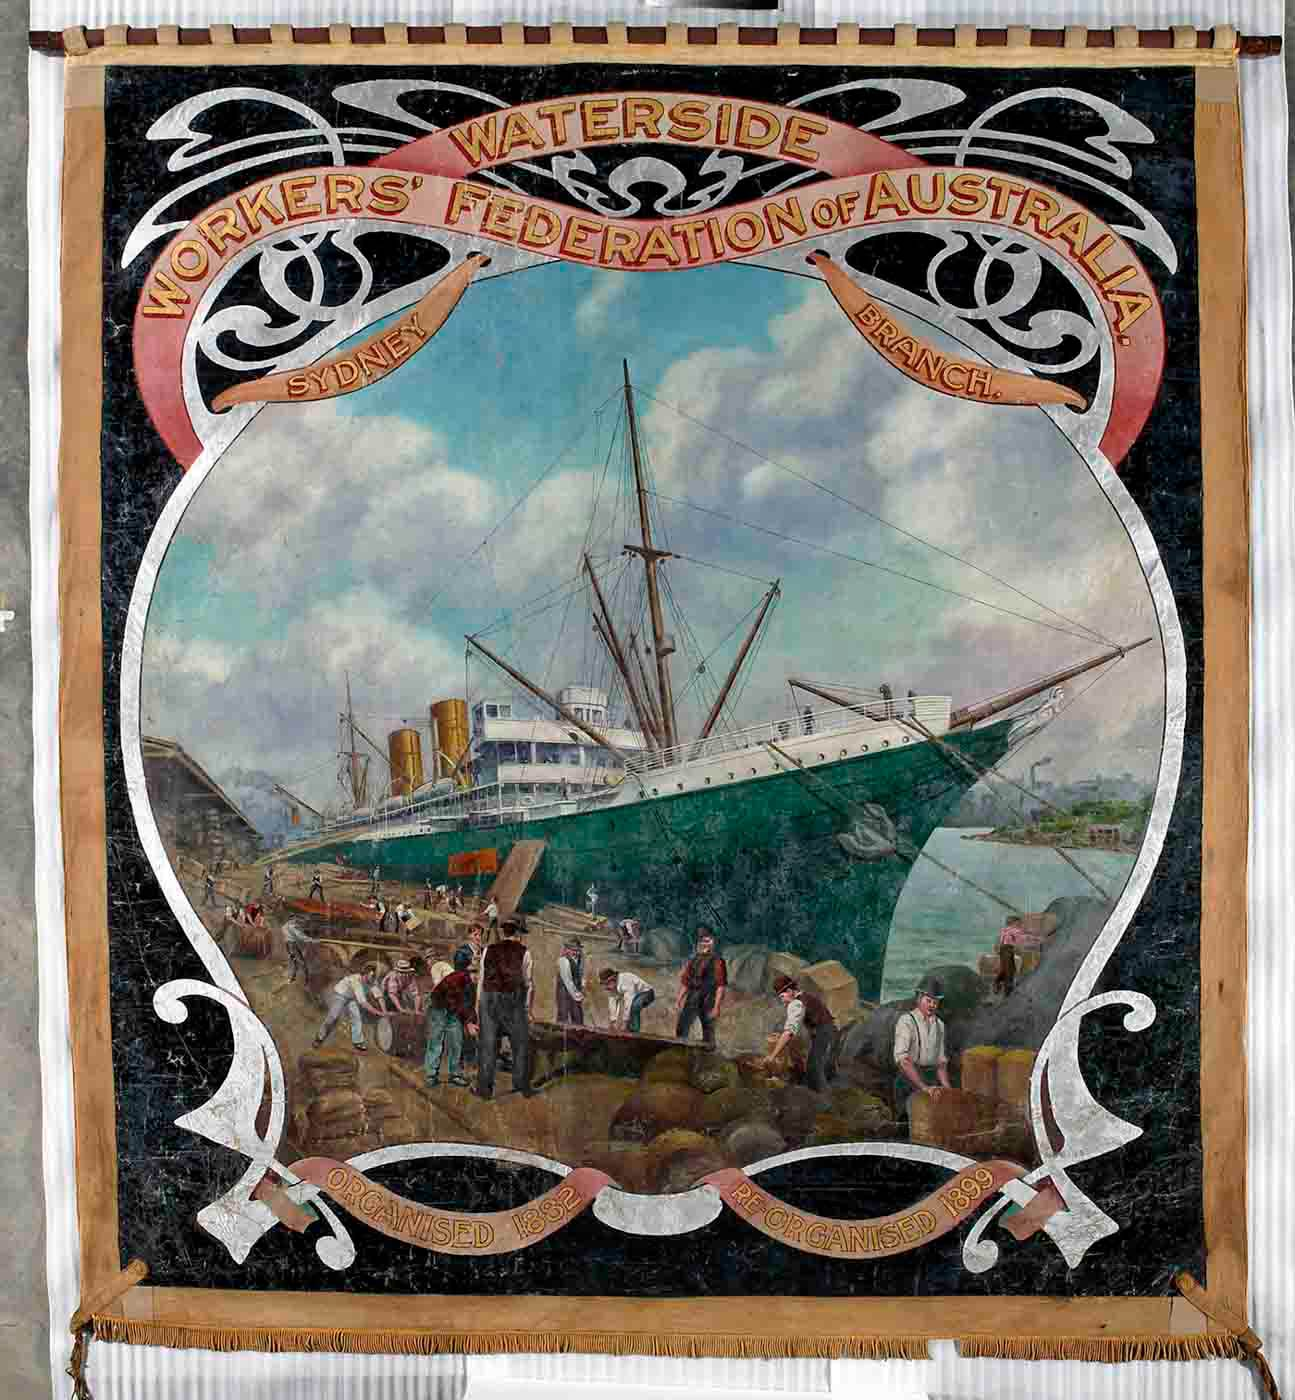 Large almost square banner painted in oil colours, showing a central image of a ship docked beside a busy wharf. 'Waterside Workers' Federation of Australia' and 'Sydney branch' is written at the top. At the bottom the text reads 'Organised 1882', 'Re-organised 1899'.  - click to view larger image